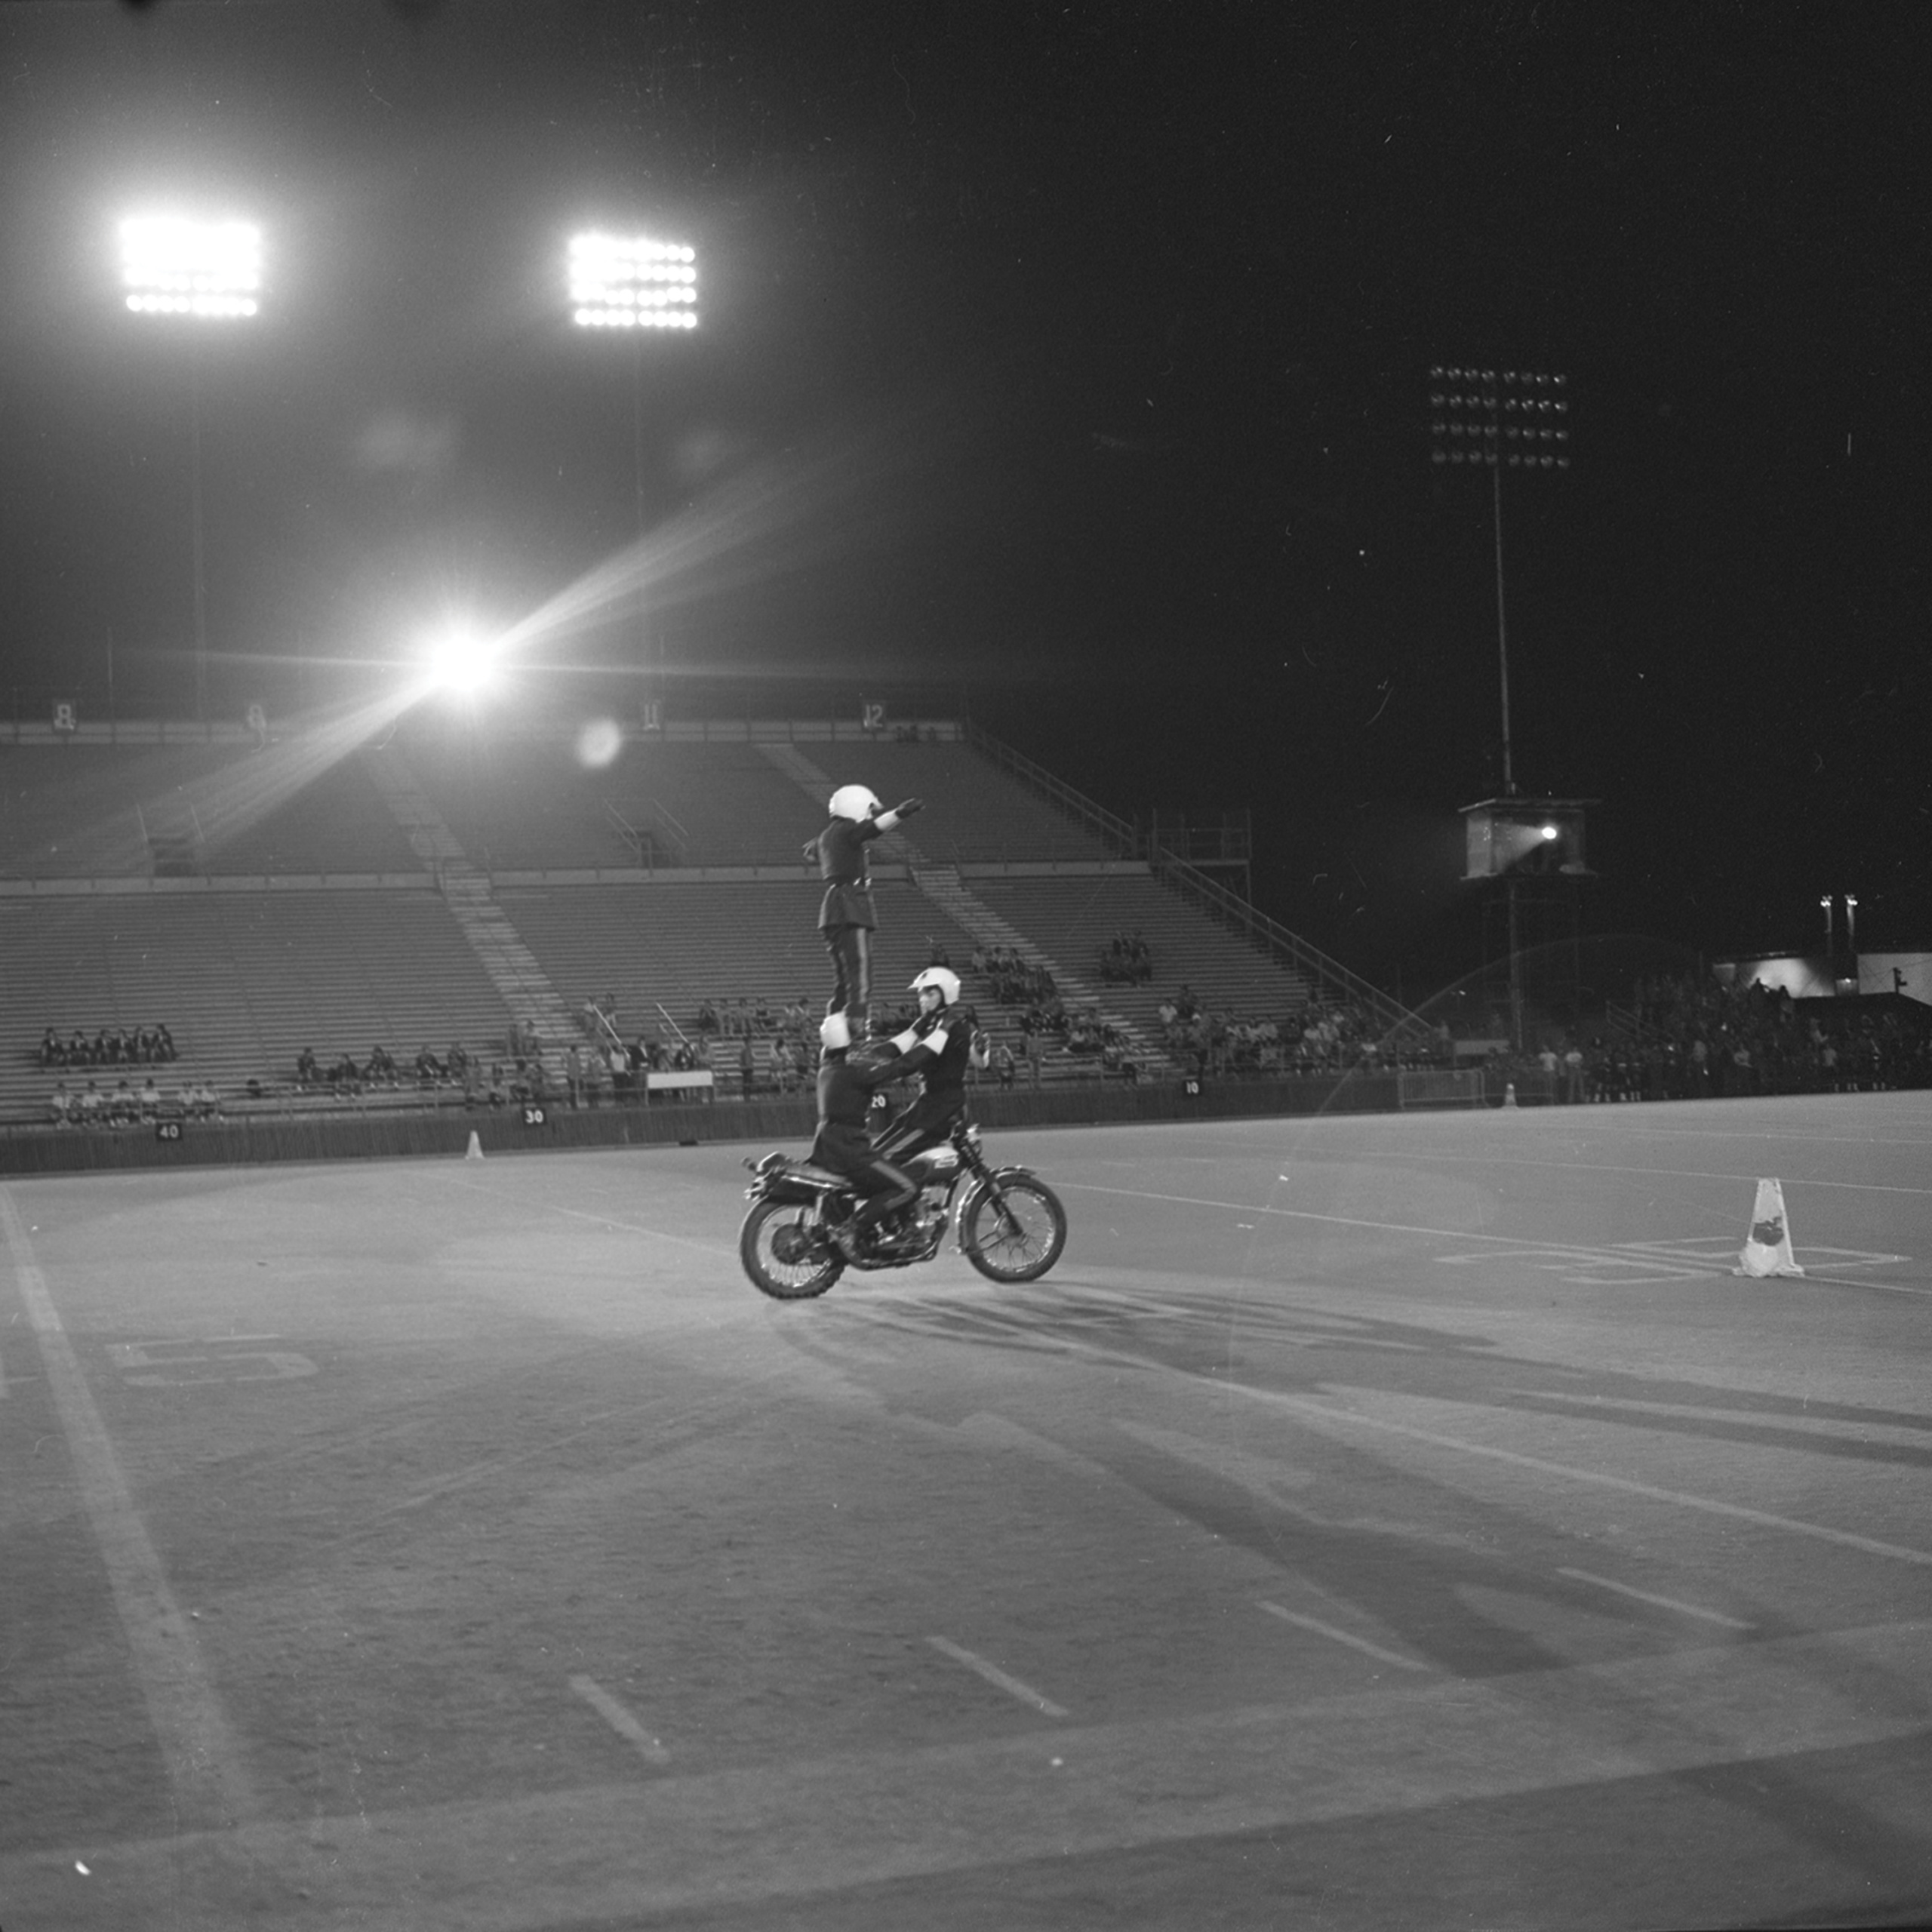 Motorcycle Rehearsal at CNE Grandstand, 1974. Canadian National Exhibition Archives, MG5-F3570-I10. Courtesy of the CNEA